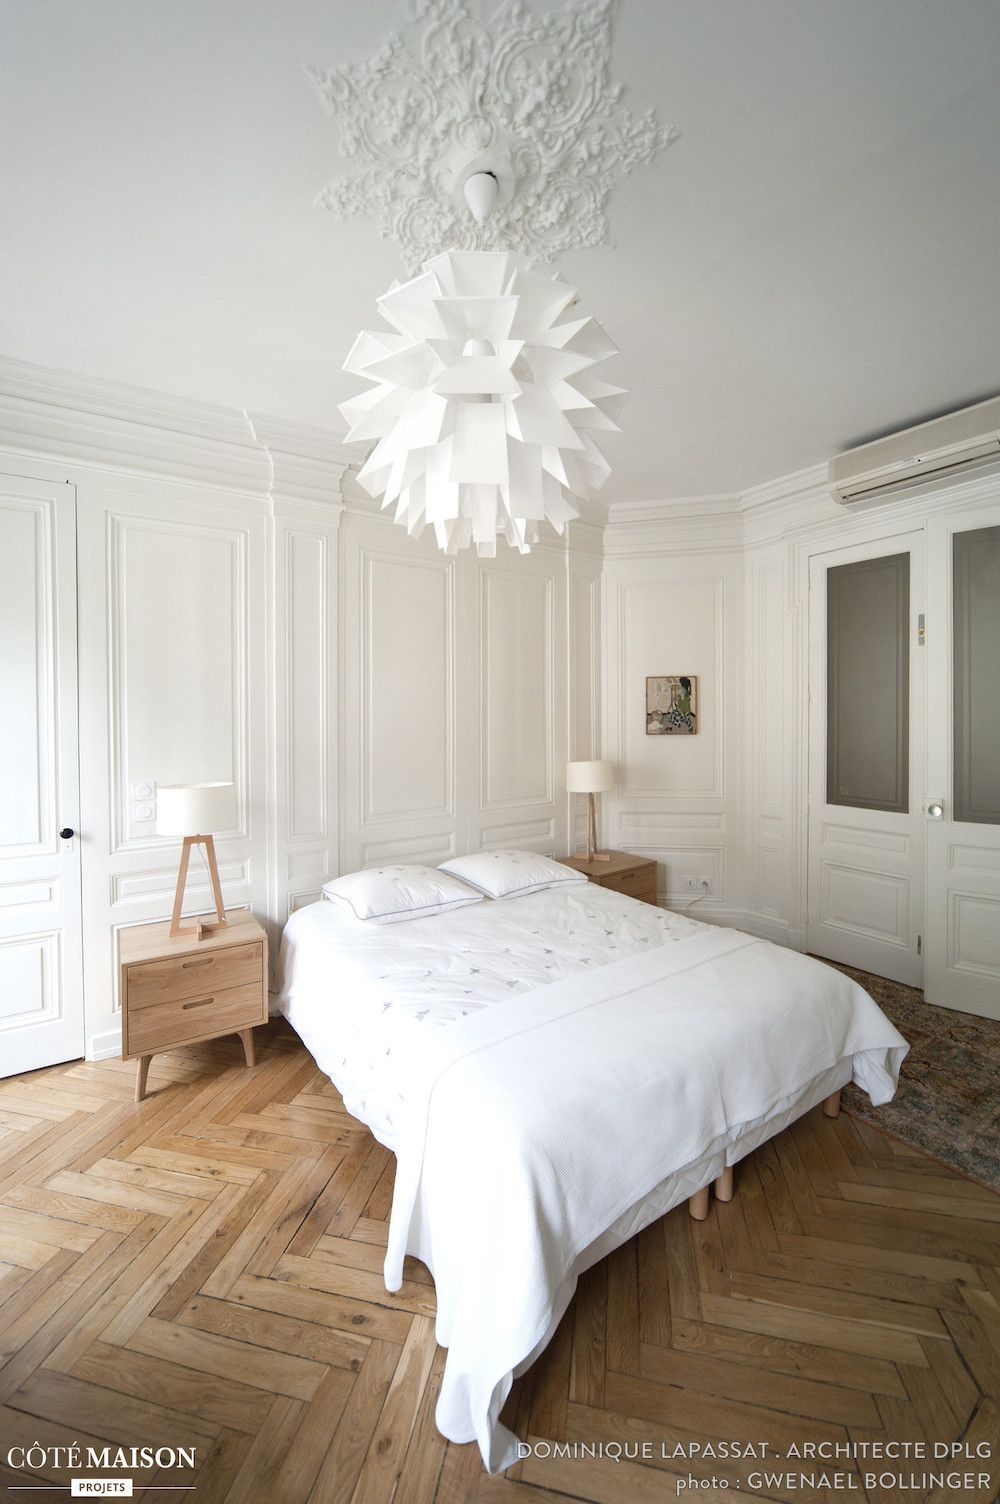 Parisian bedroom with Modern light fixture and herringbone wood floors via Dominique Lapassat